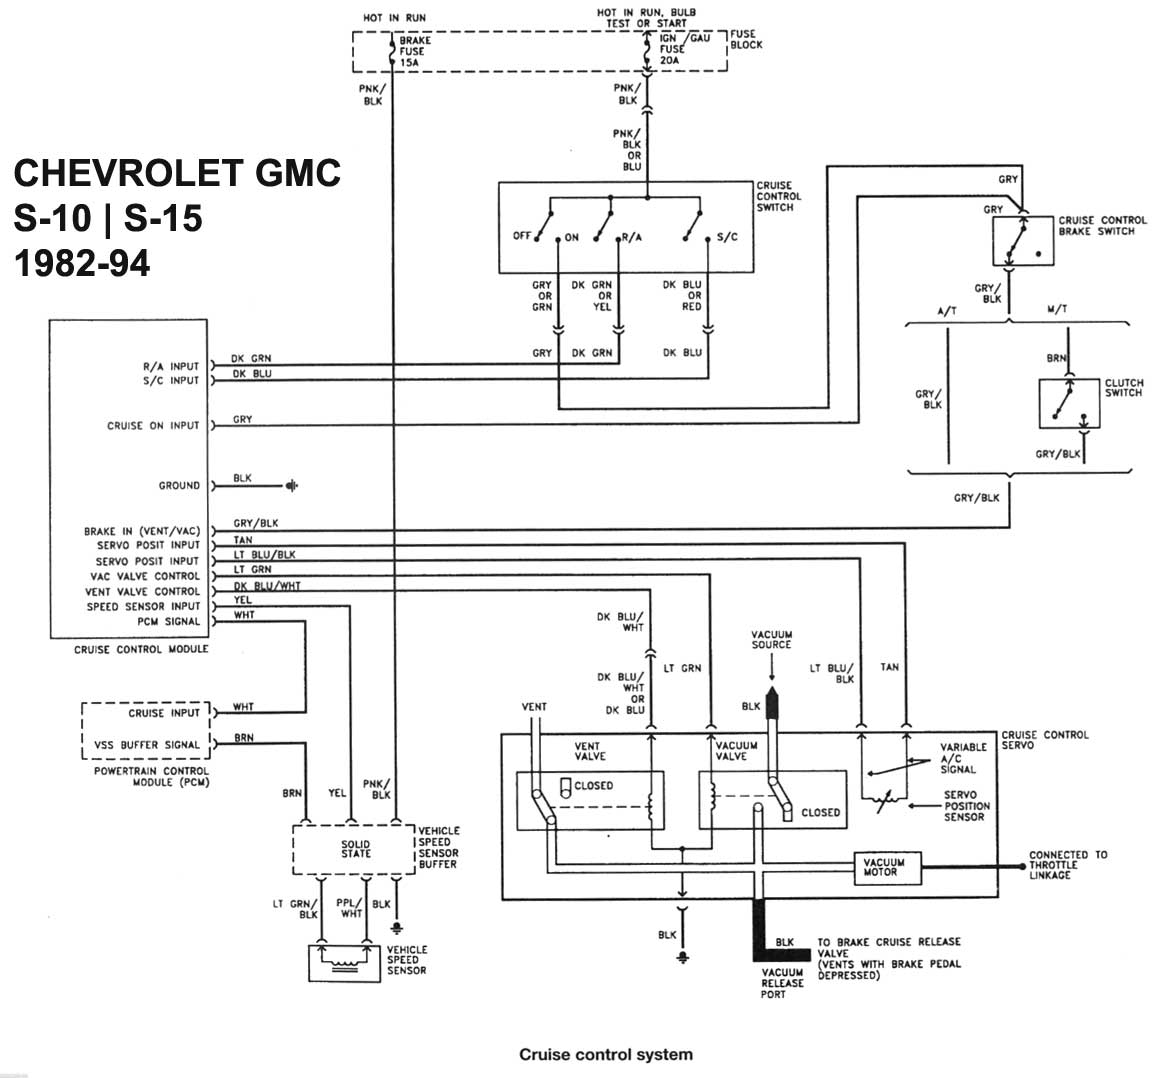 1989 chevy s10 wiring diagram 2003 chevy s10 pickup wiring diagram 1996 s10 pickup wiring diagram